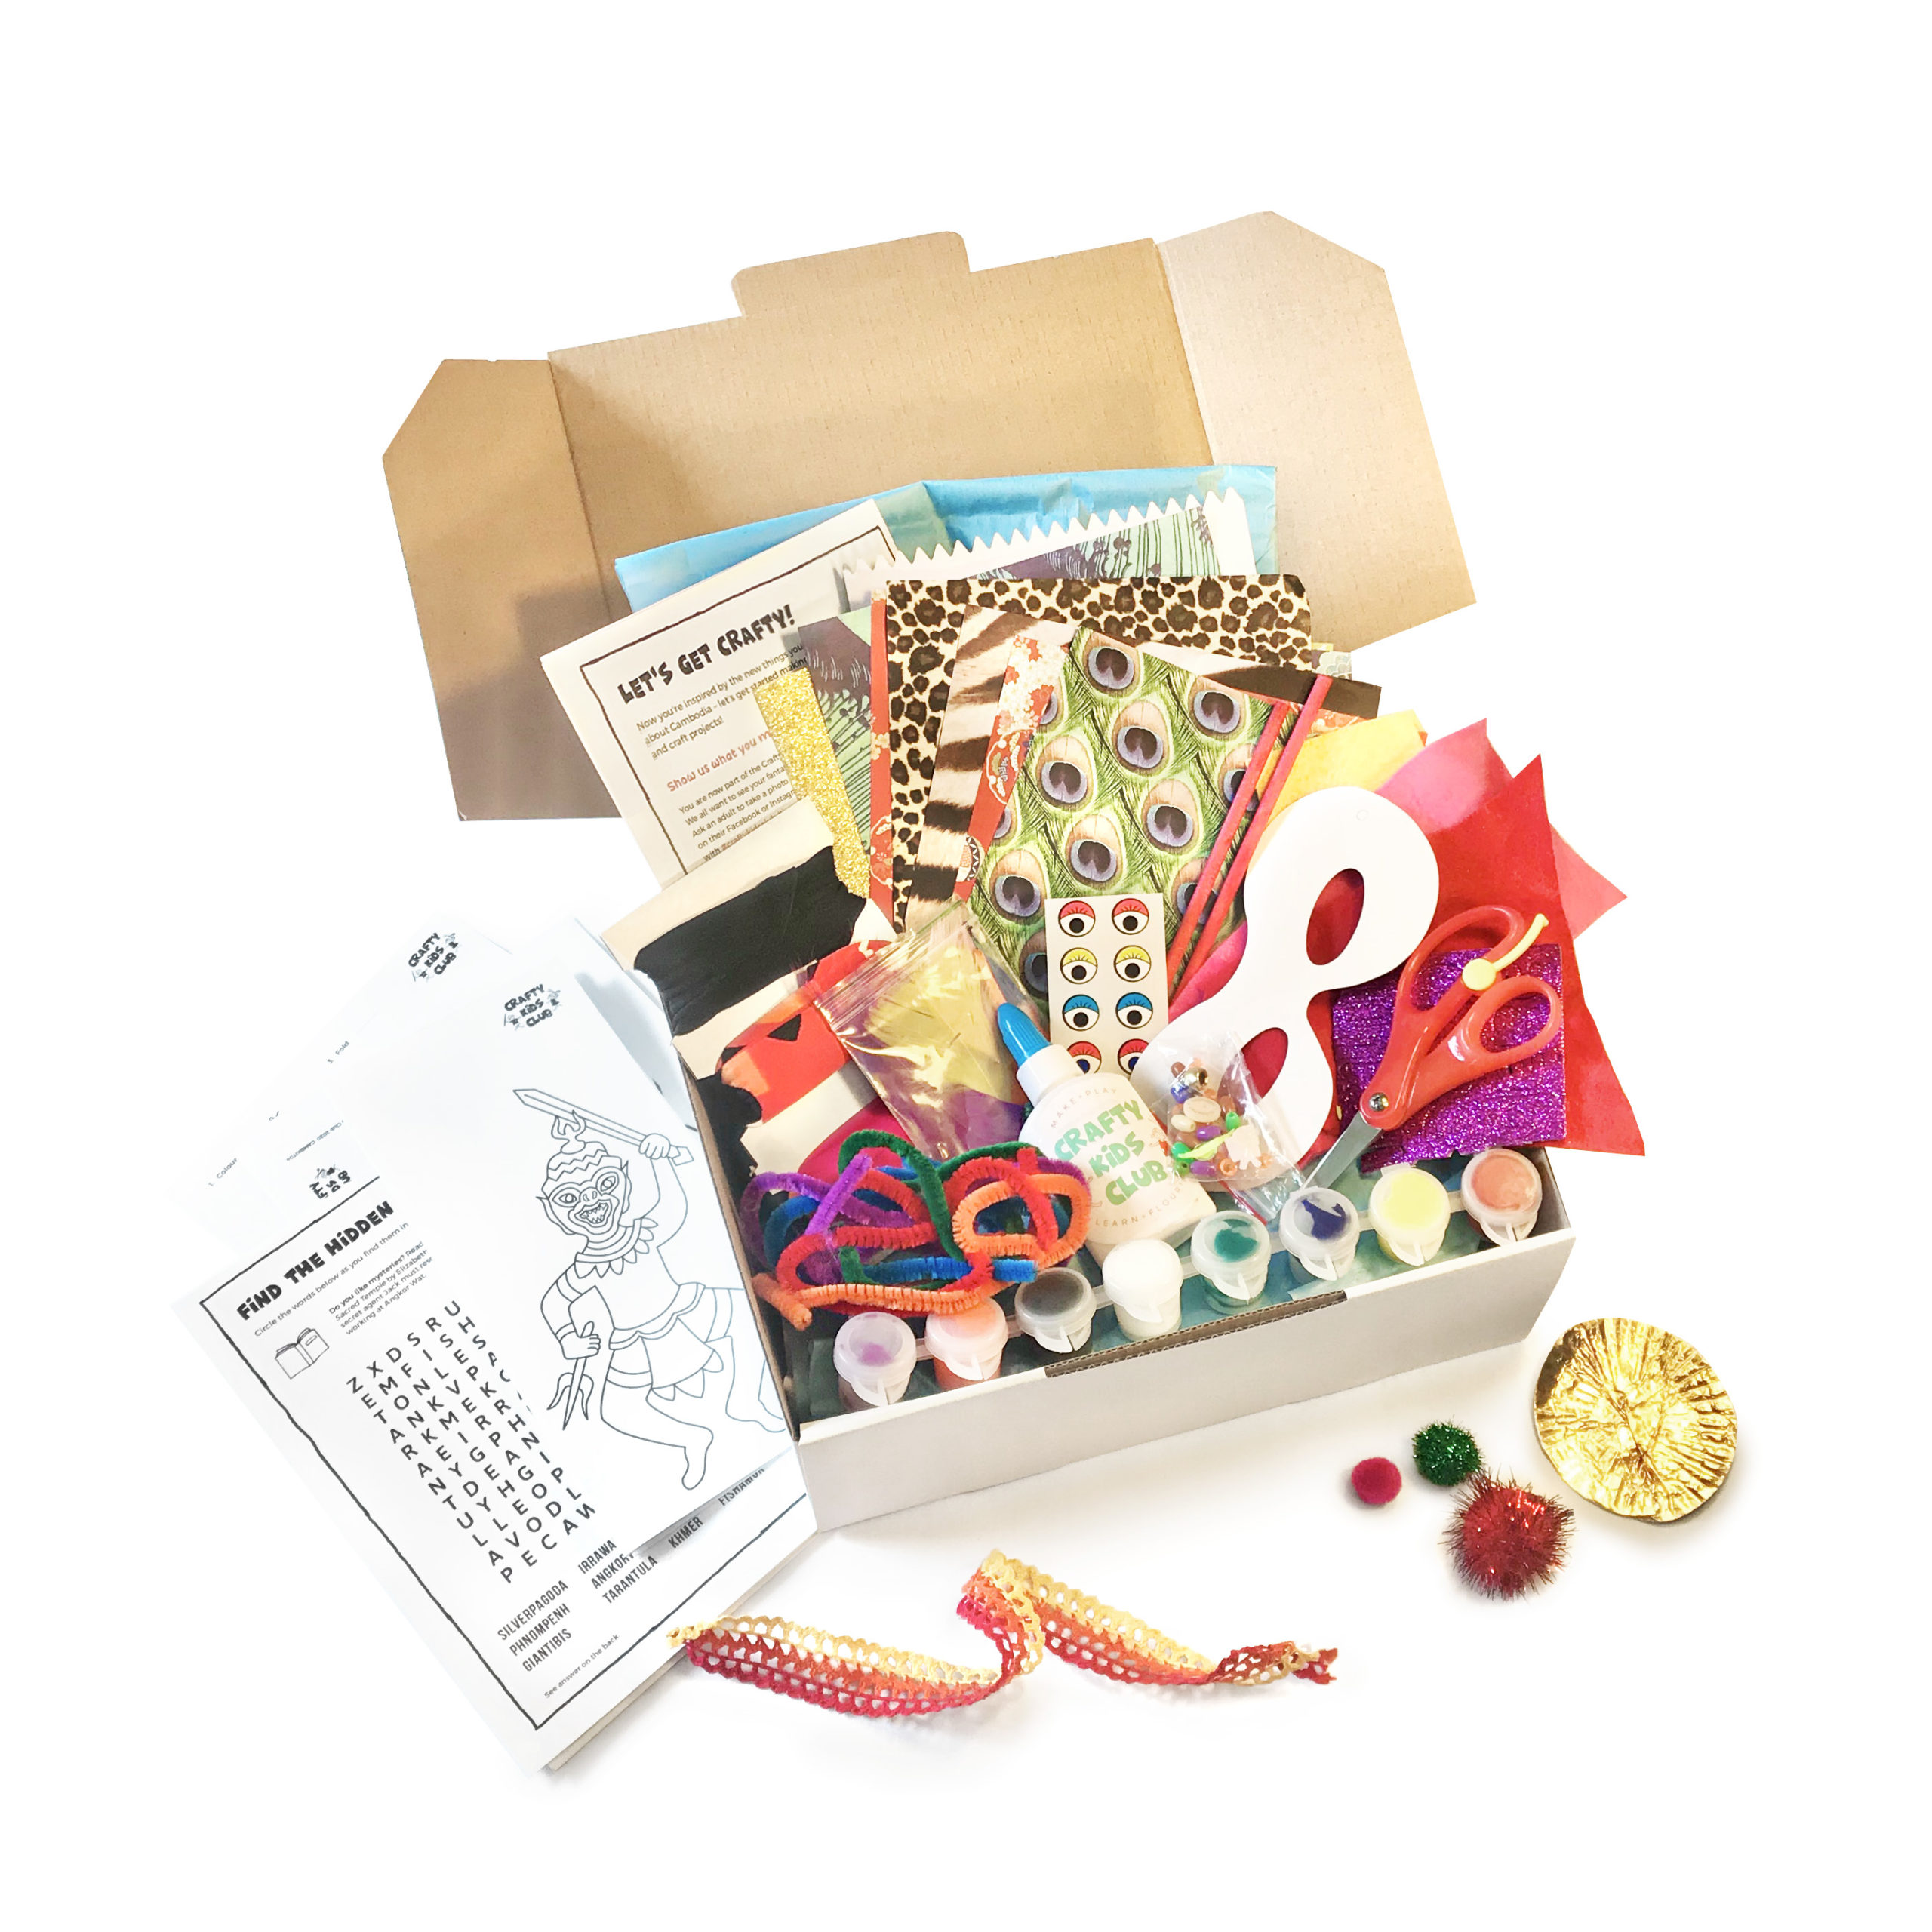 crafty kids club kids craft kits delivered to your door in australia $100 creative kids voucher taster multi project kit